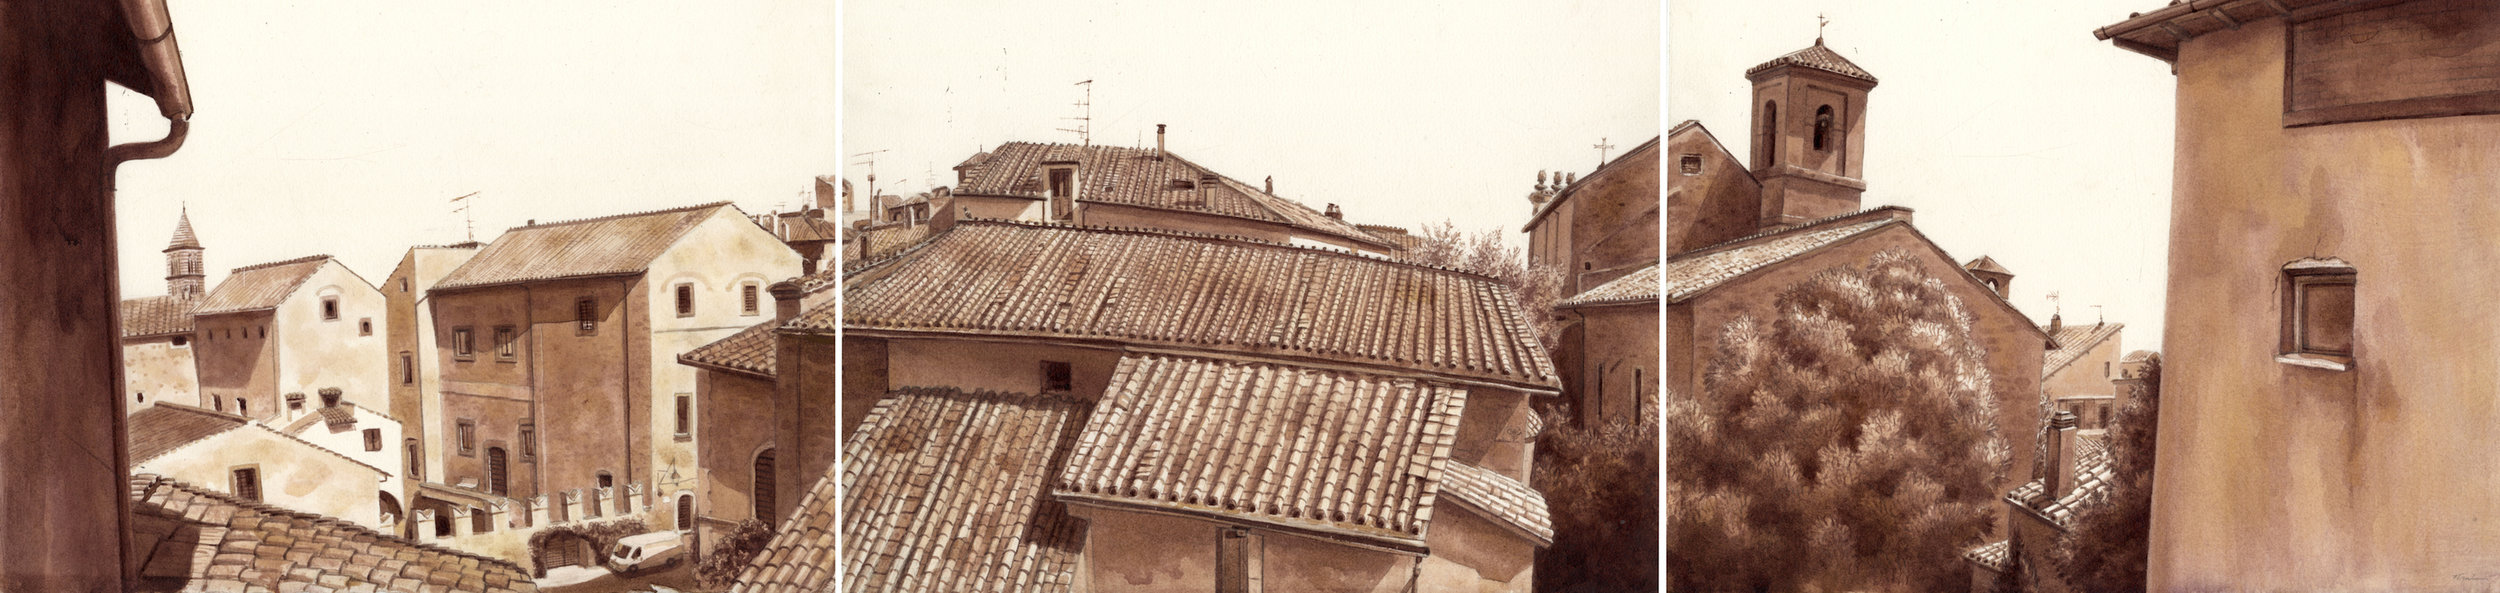 Rooftop View of an Italian Town (tryptic)